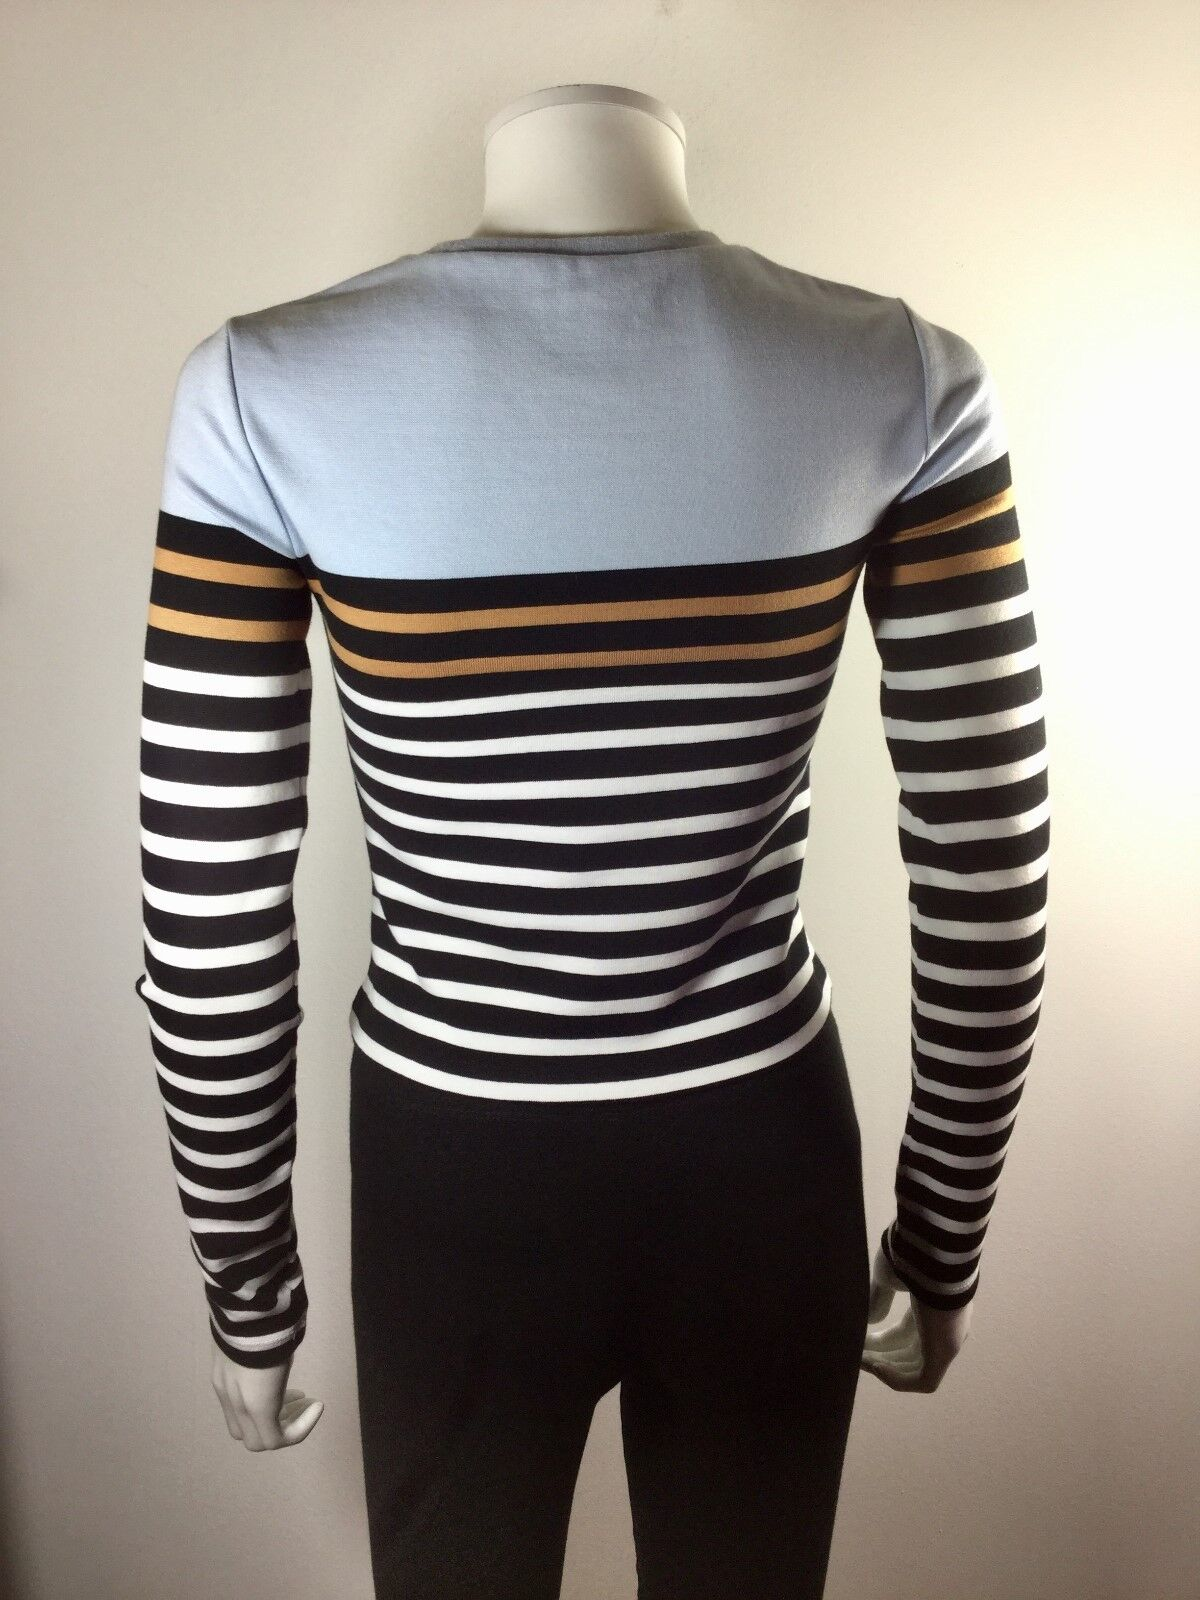 T ALEXANDER WANG bluee Striped Pull Over Cropped Sweater Sweater Sweater Size X Small c81627